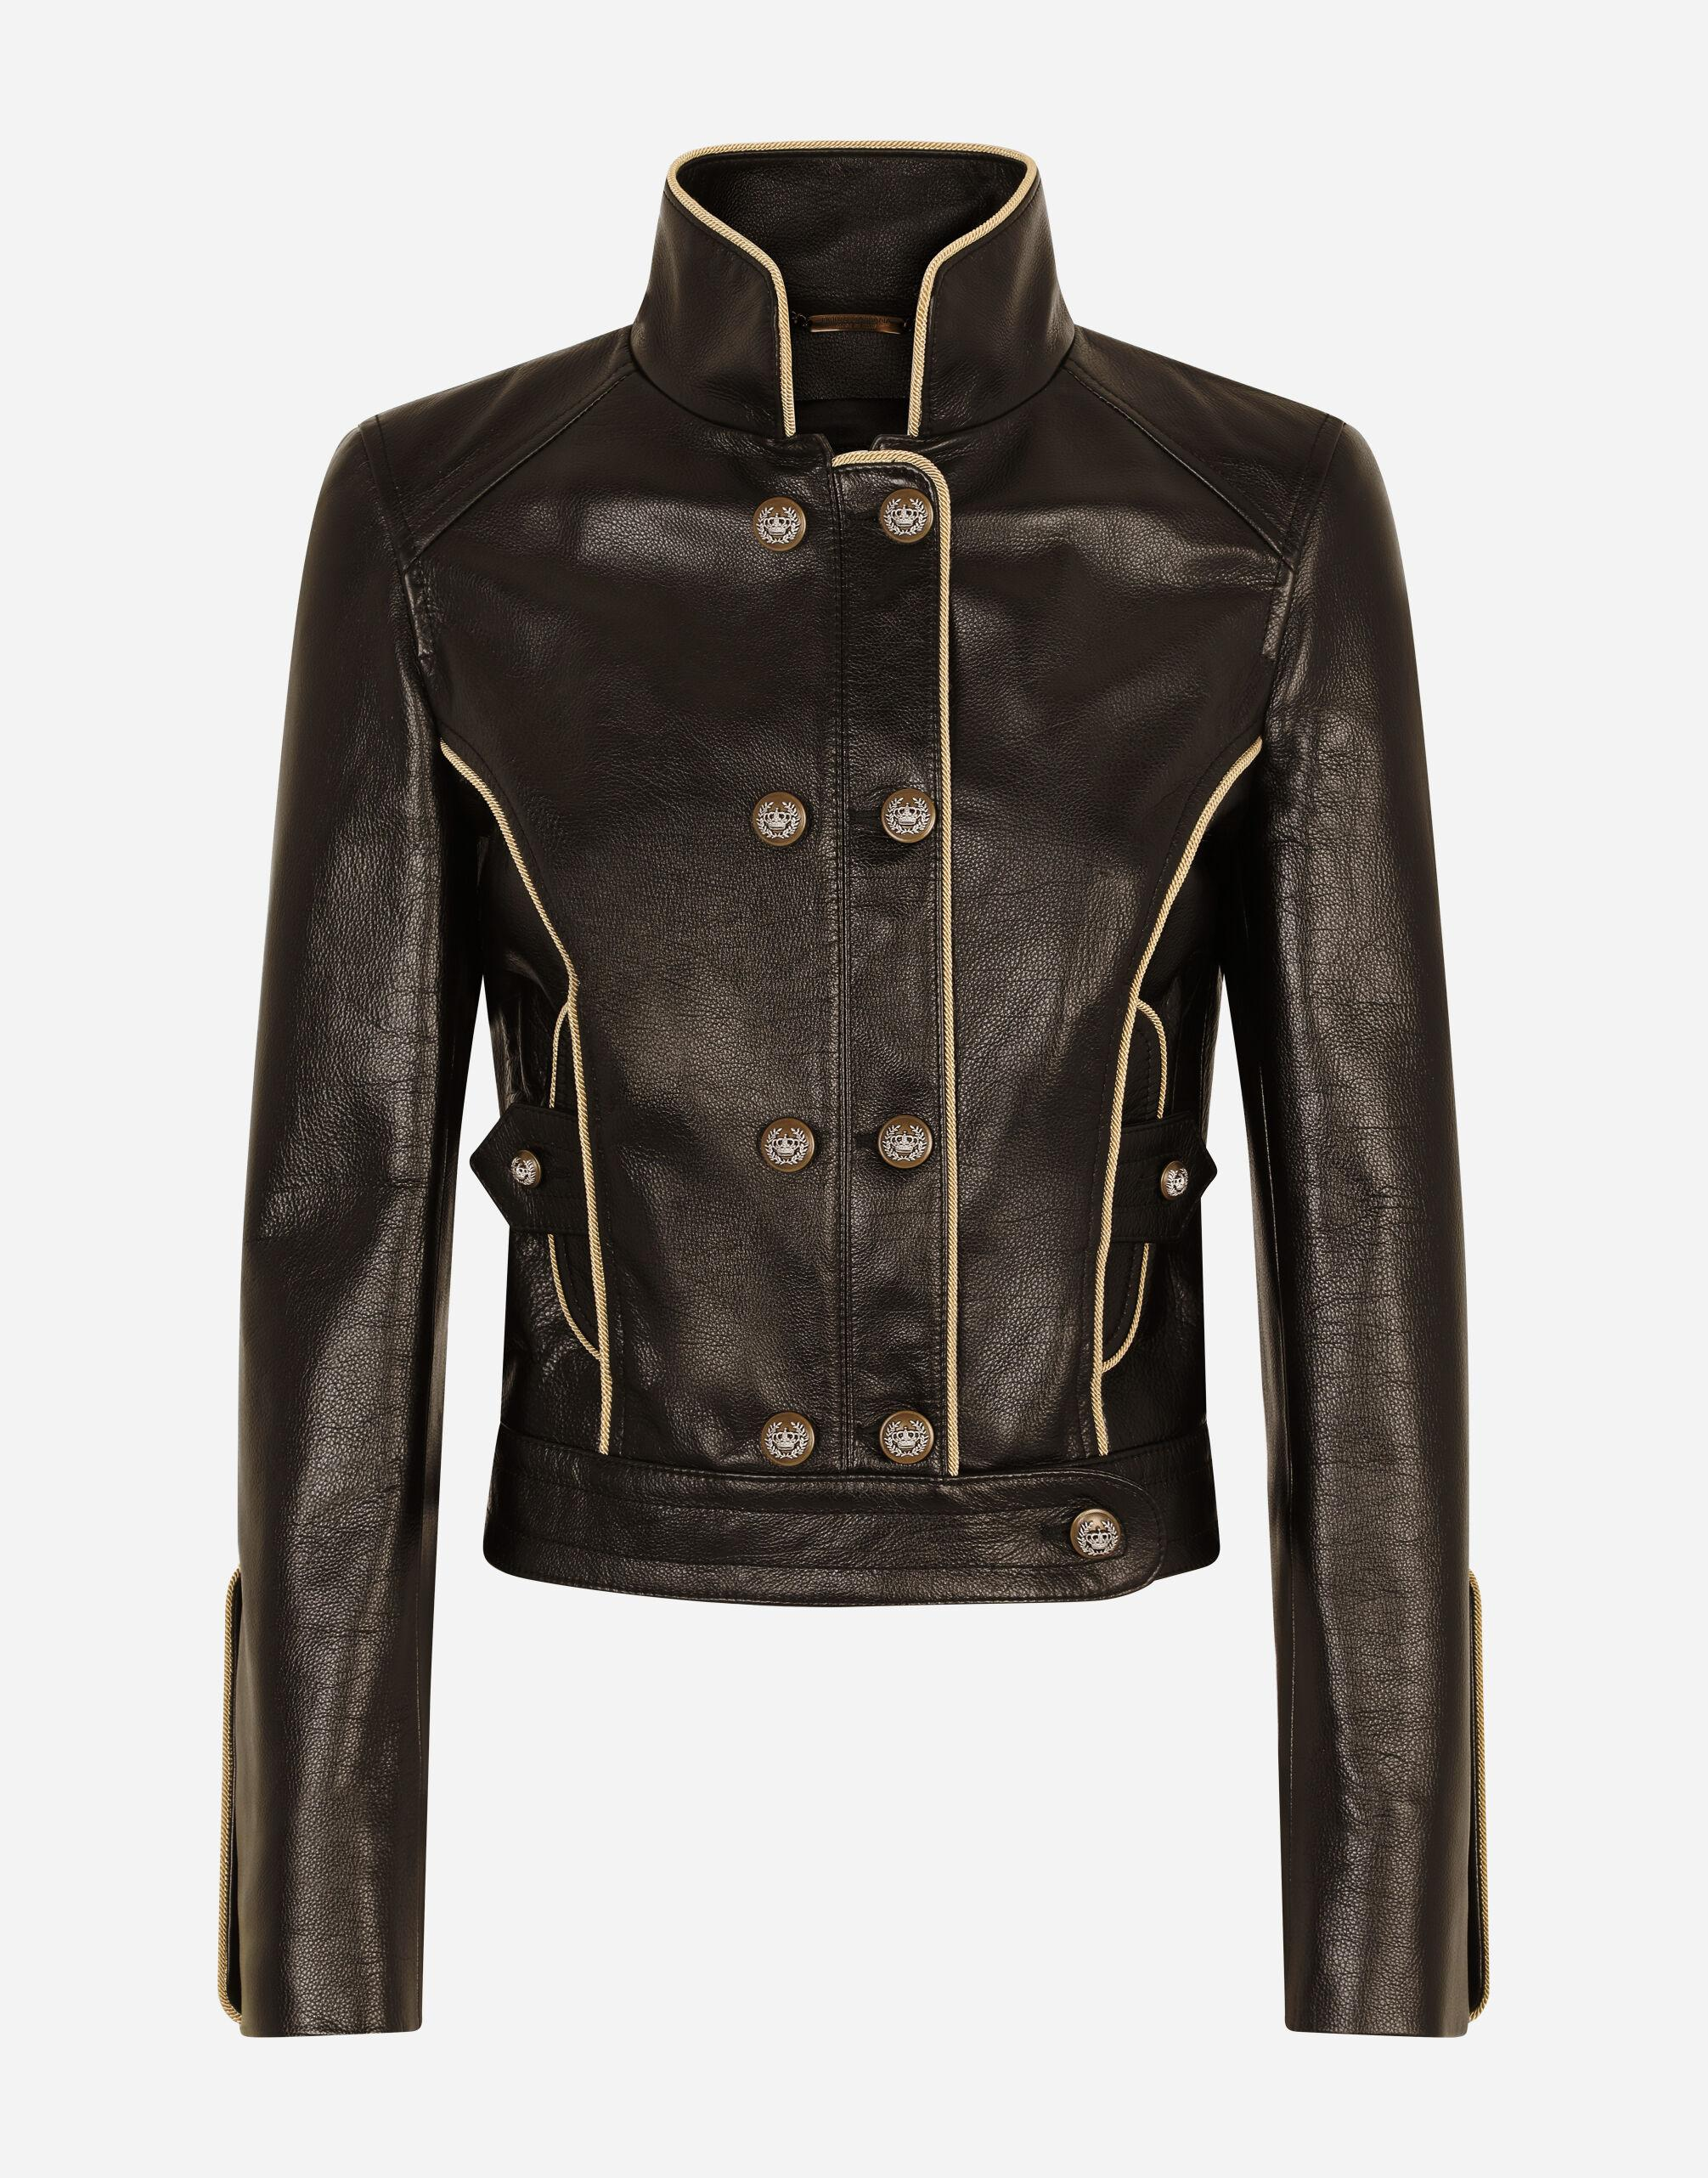 Leather biker jacket with heraldic buttons 5